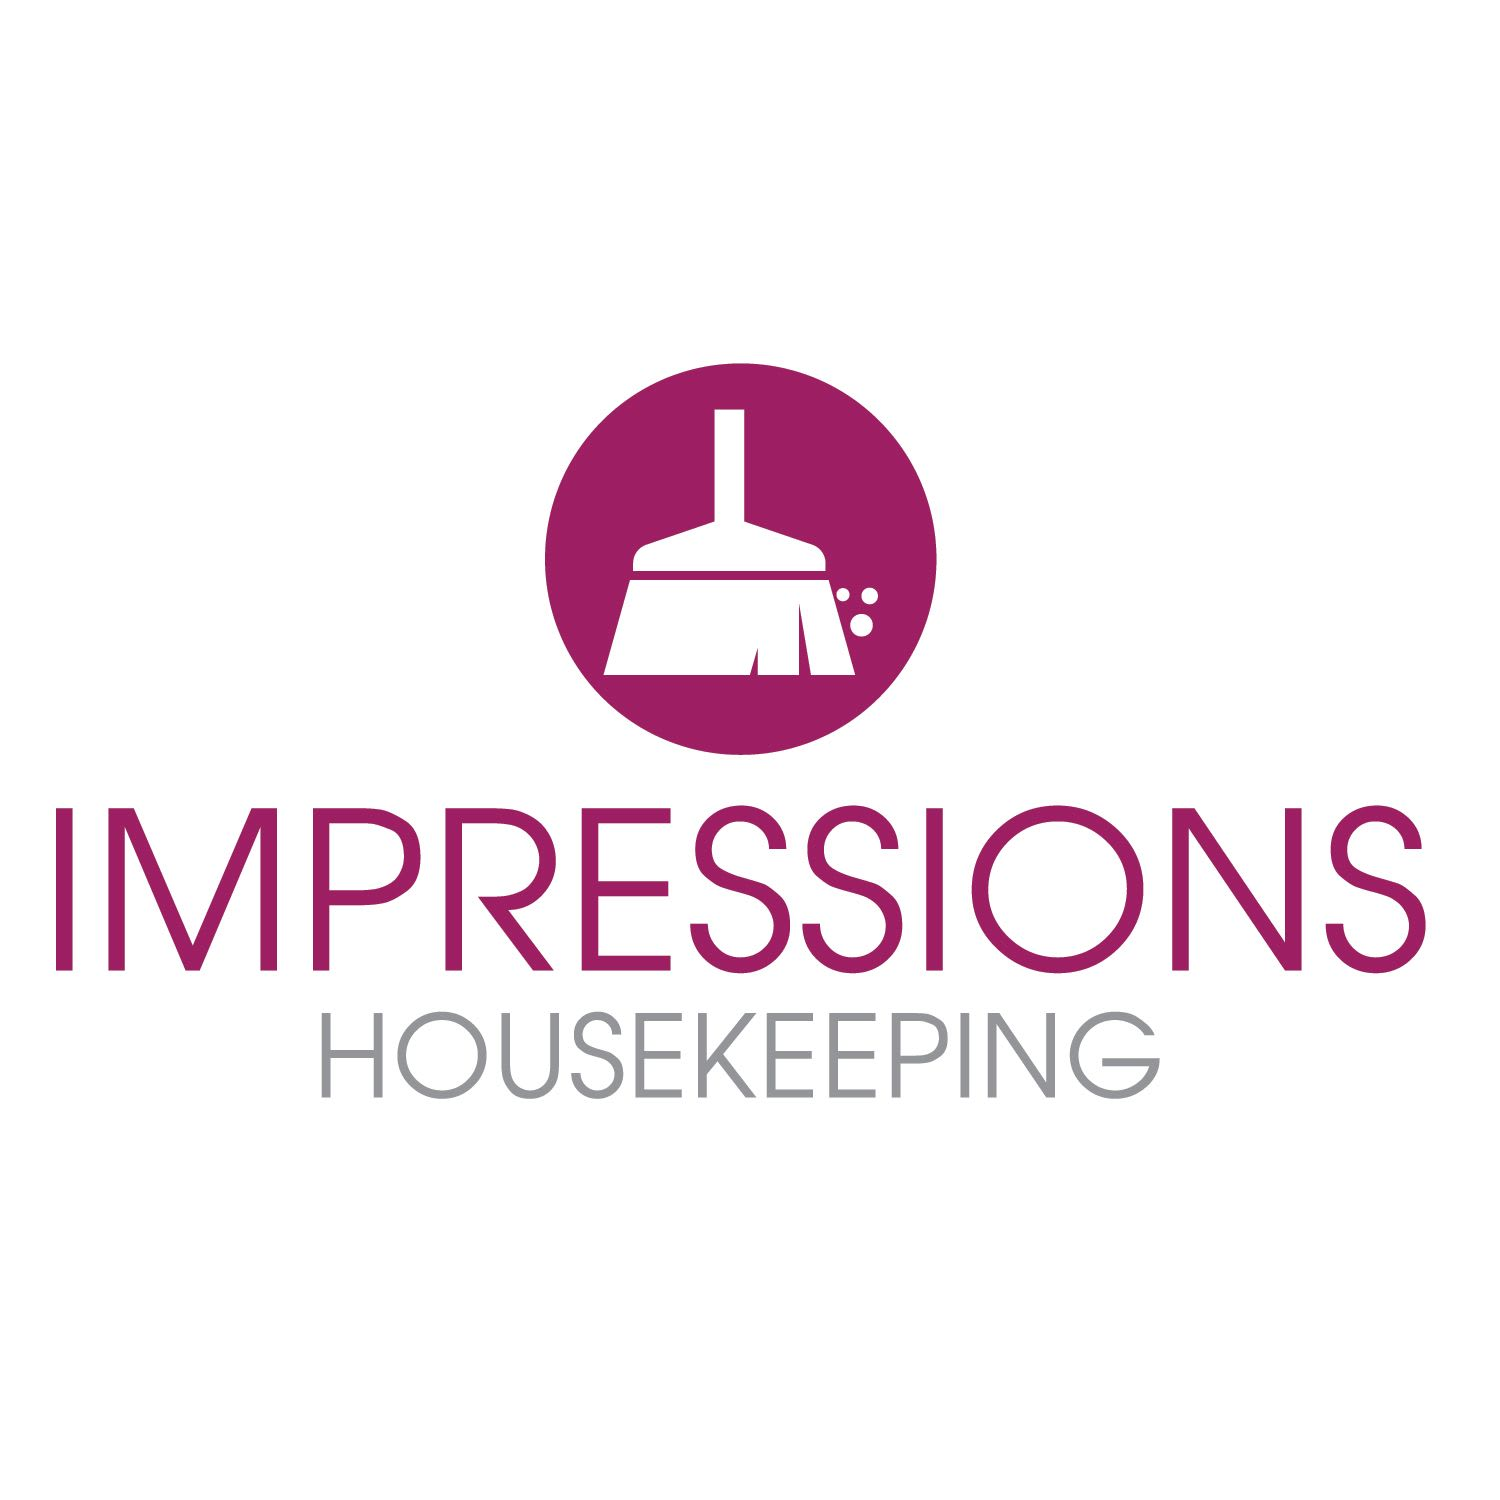 Housekeeping services that leave an impression at Discovery Village At Dominion in San Antonio, Texas